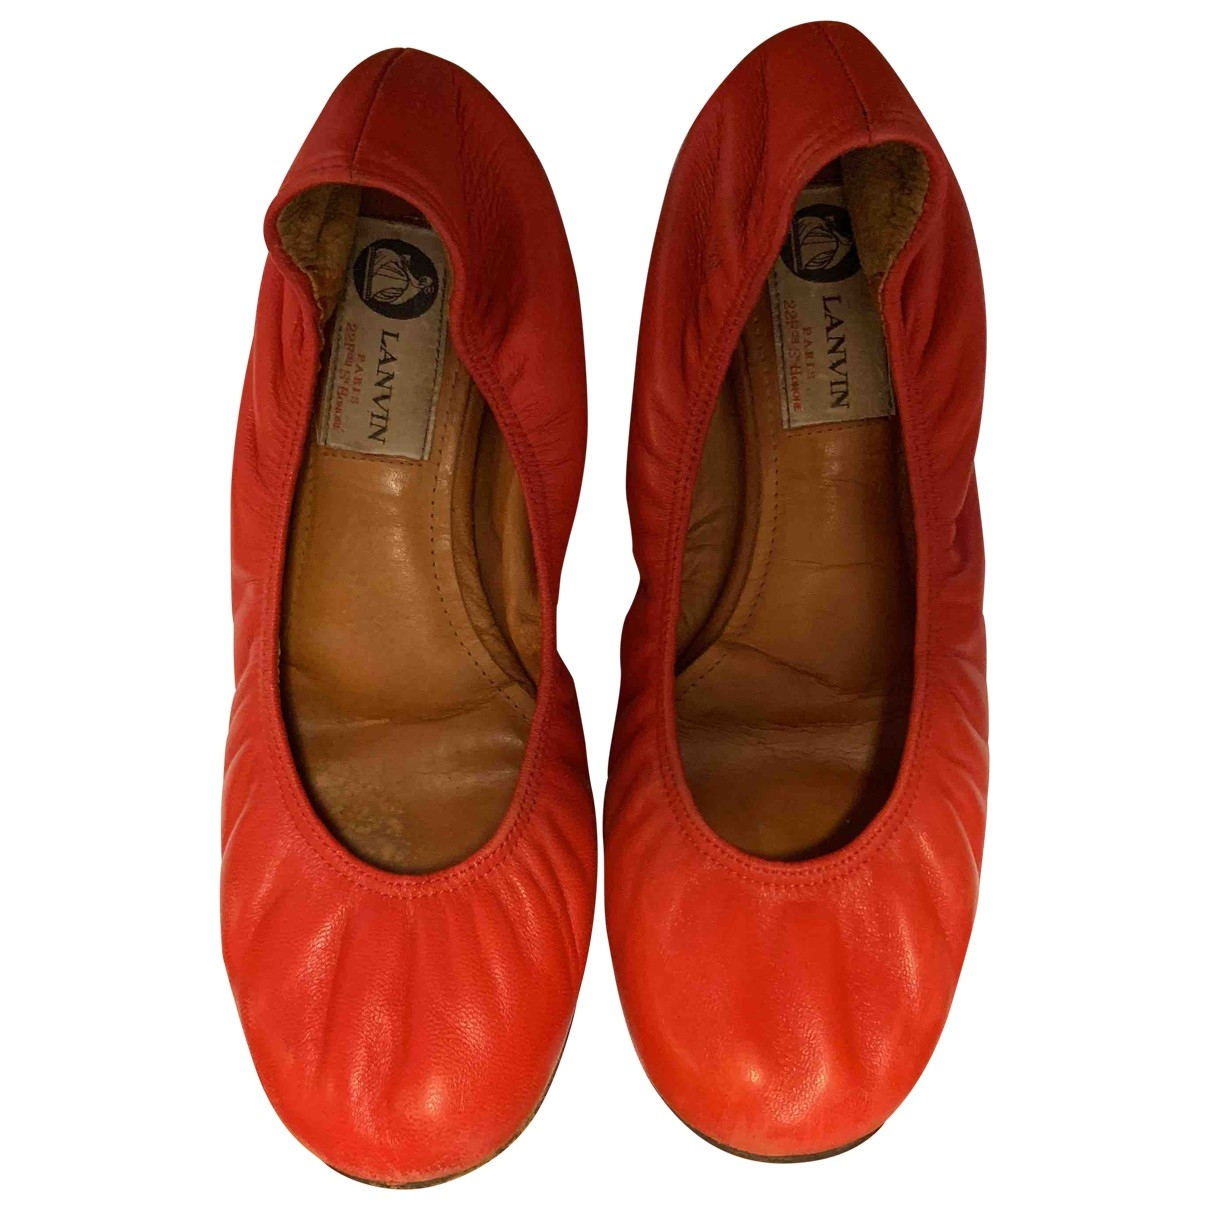 Lanvin \N Red Leather Ballet flats for Women 37.5 EU